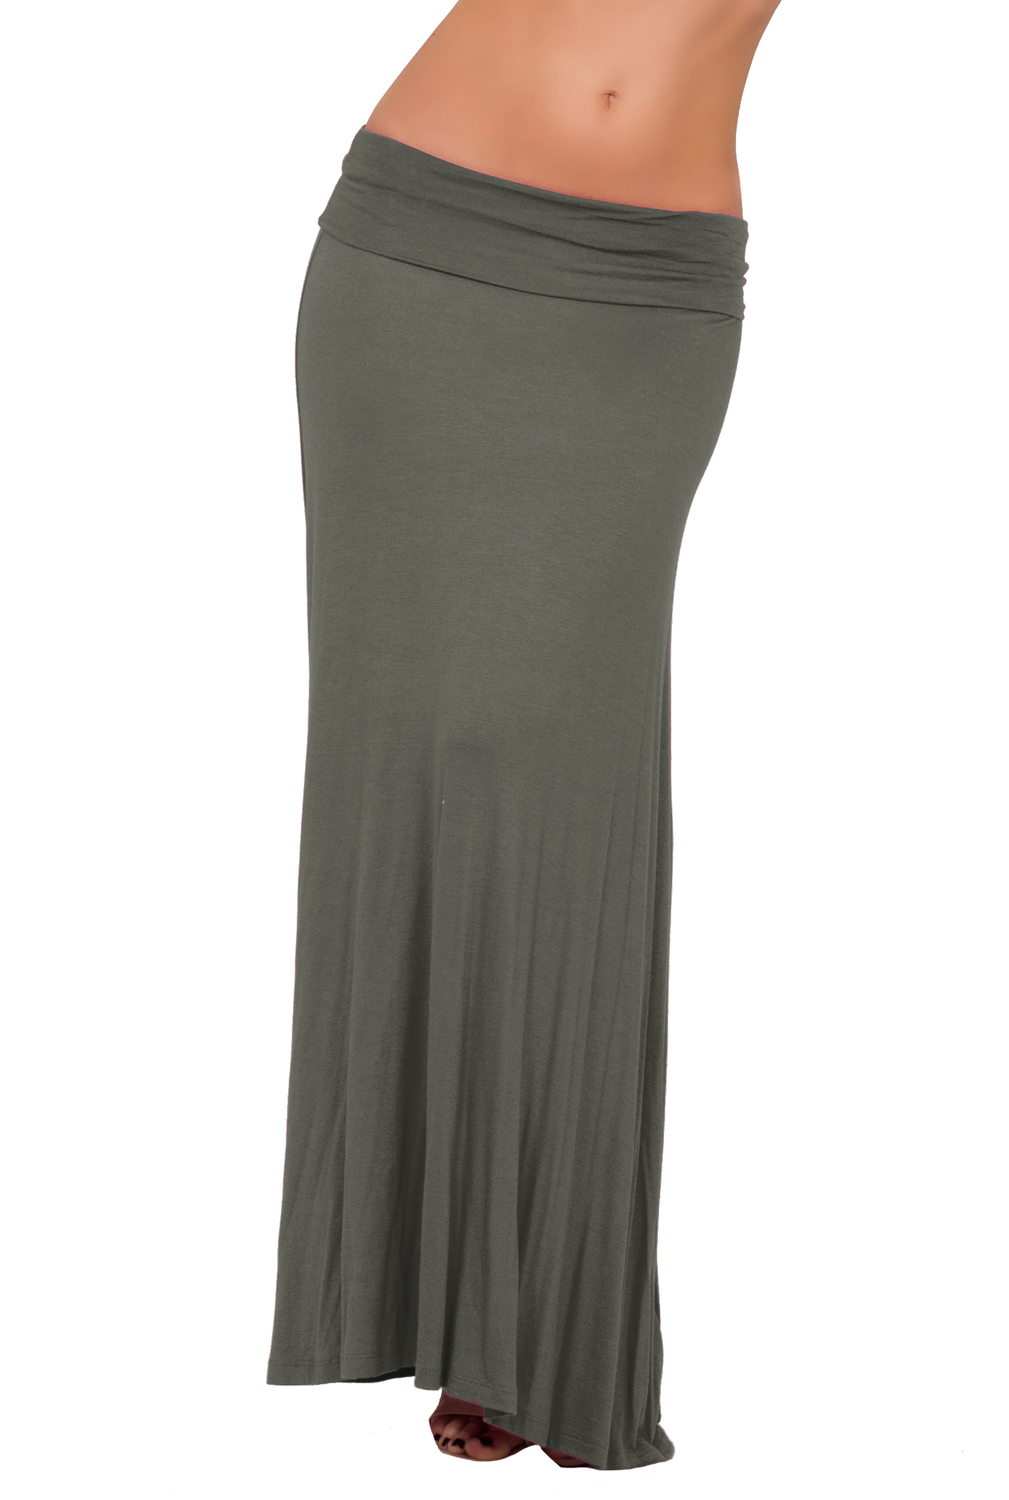 low rise fitted boho fit maxi casual summer